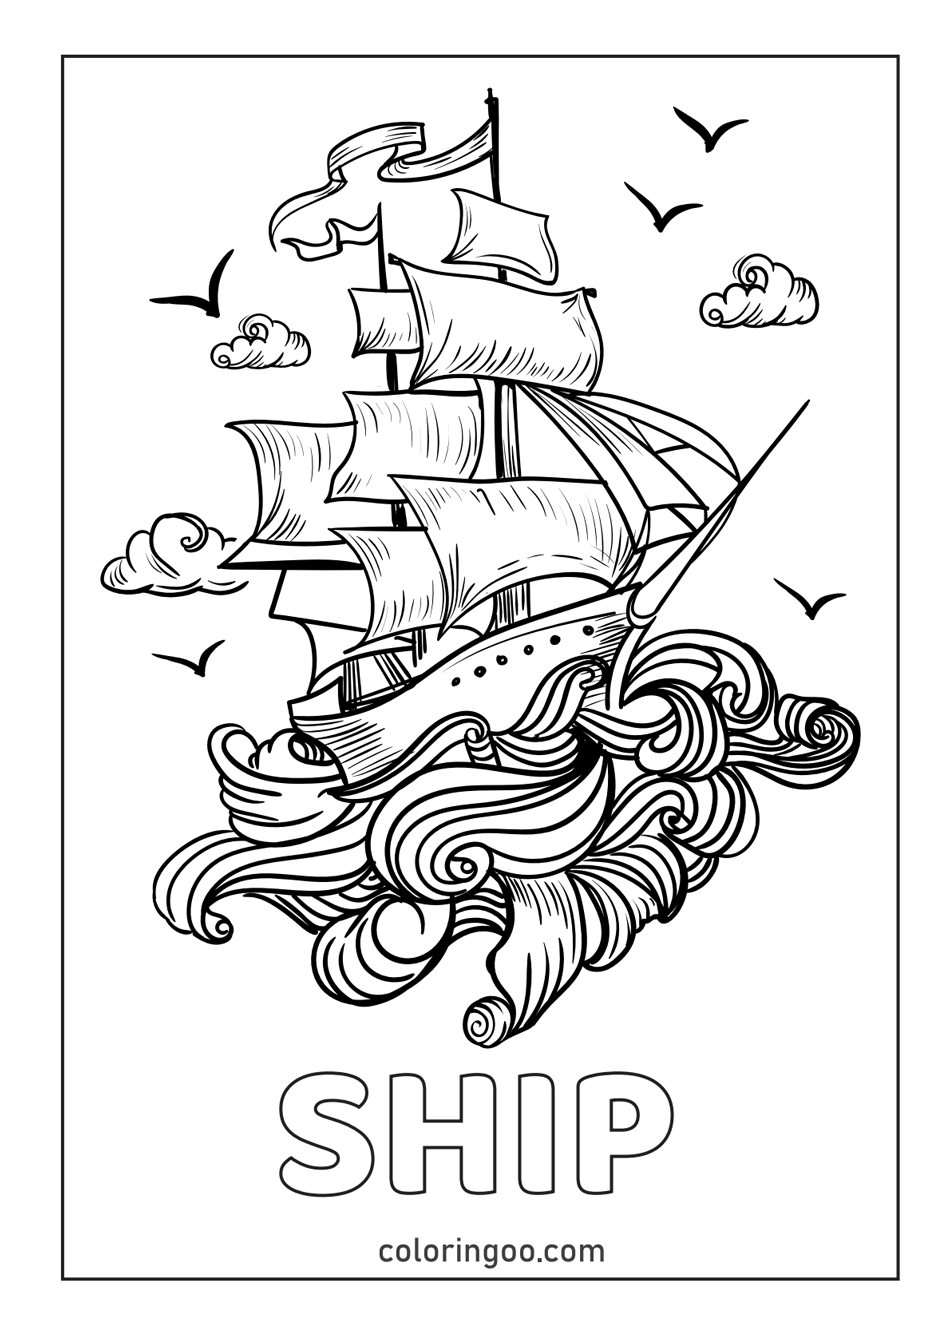 Ship Printable Coloring Pages & Pdf For Kids